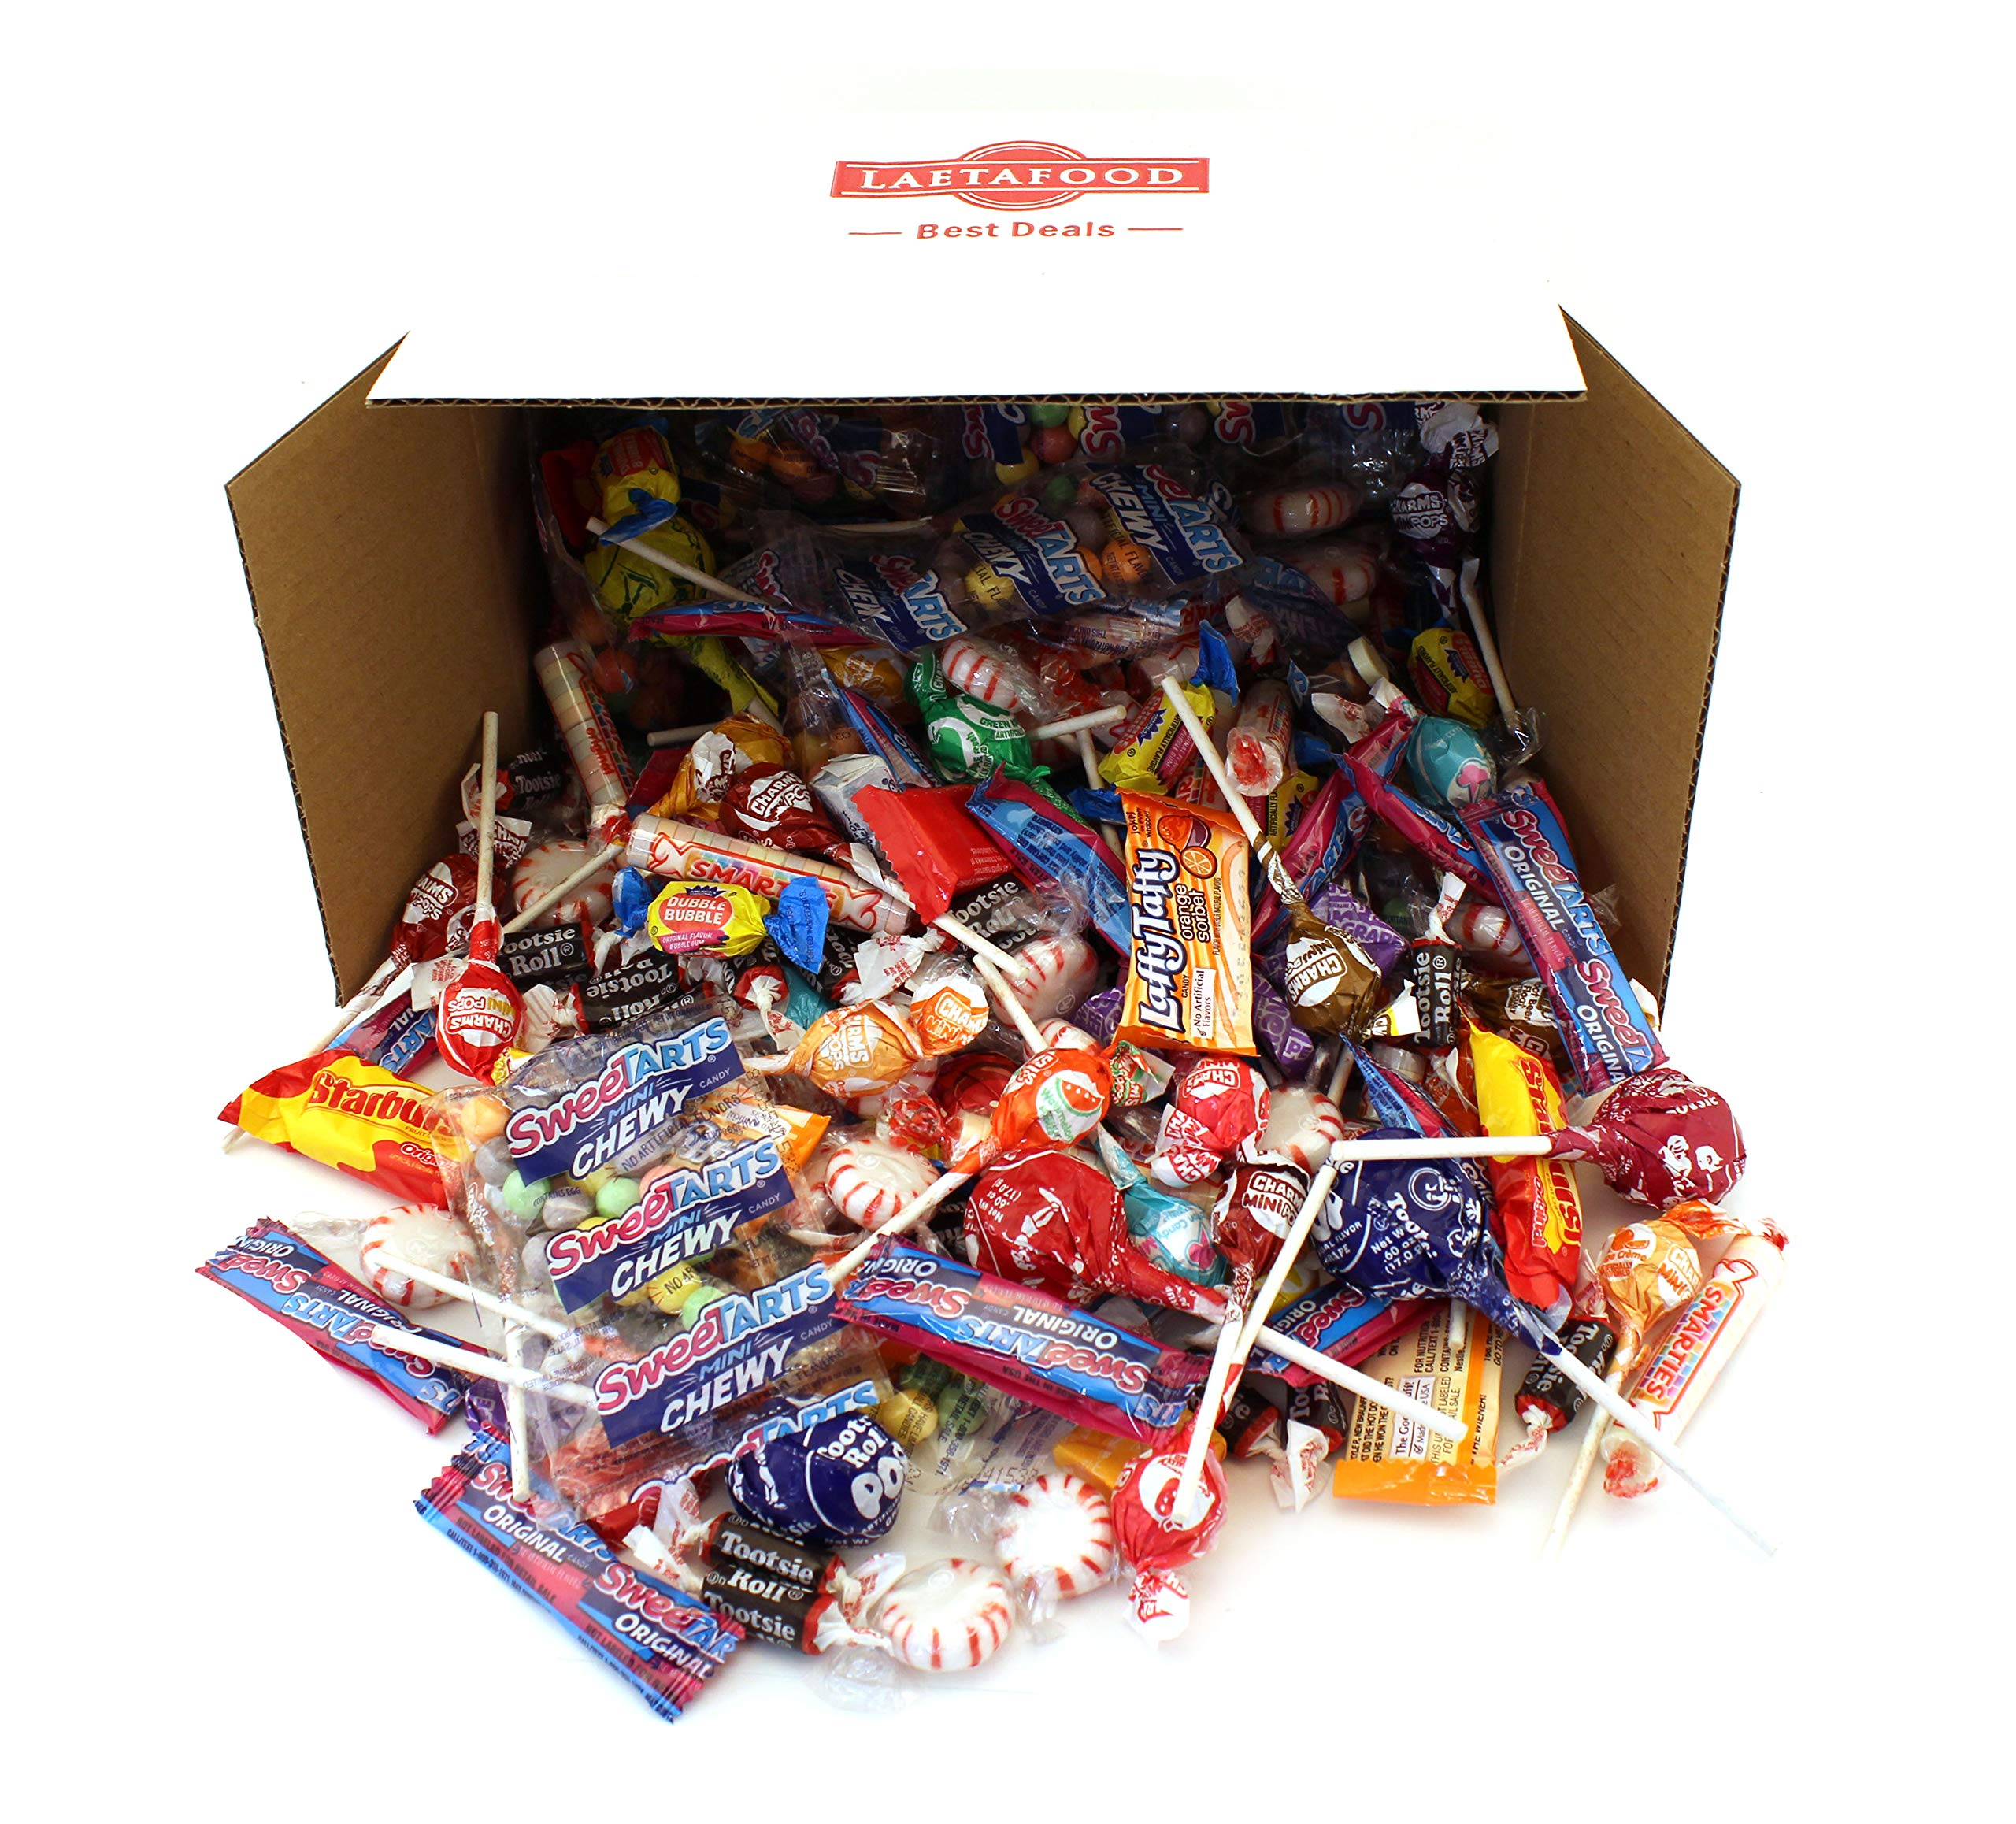 LaetaFood Box, Halloween Candy Assortment - Tootsie Pops, Jolly Ranchers Lollipops, Smarties Rolls, Wonka Laffy Taffy, Now Later, Starburst, SweeTarts, Dubble Bubble Bubble Yum (10 Lbs Bulk ) by LAETAFOOD